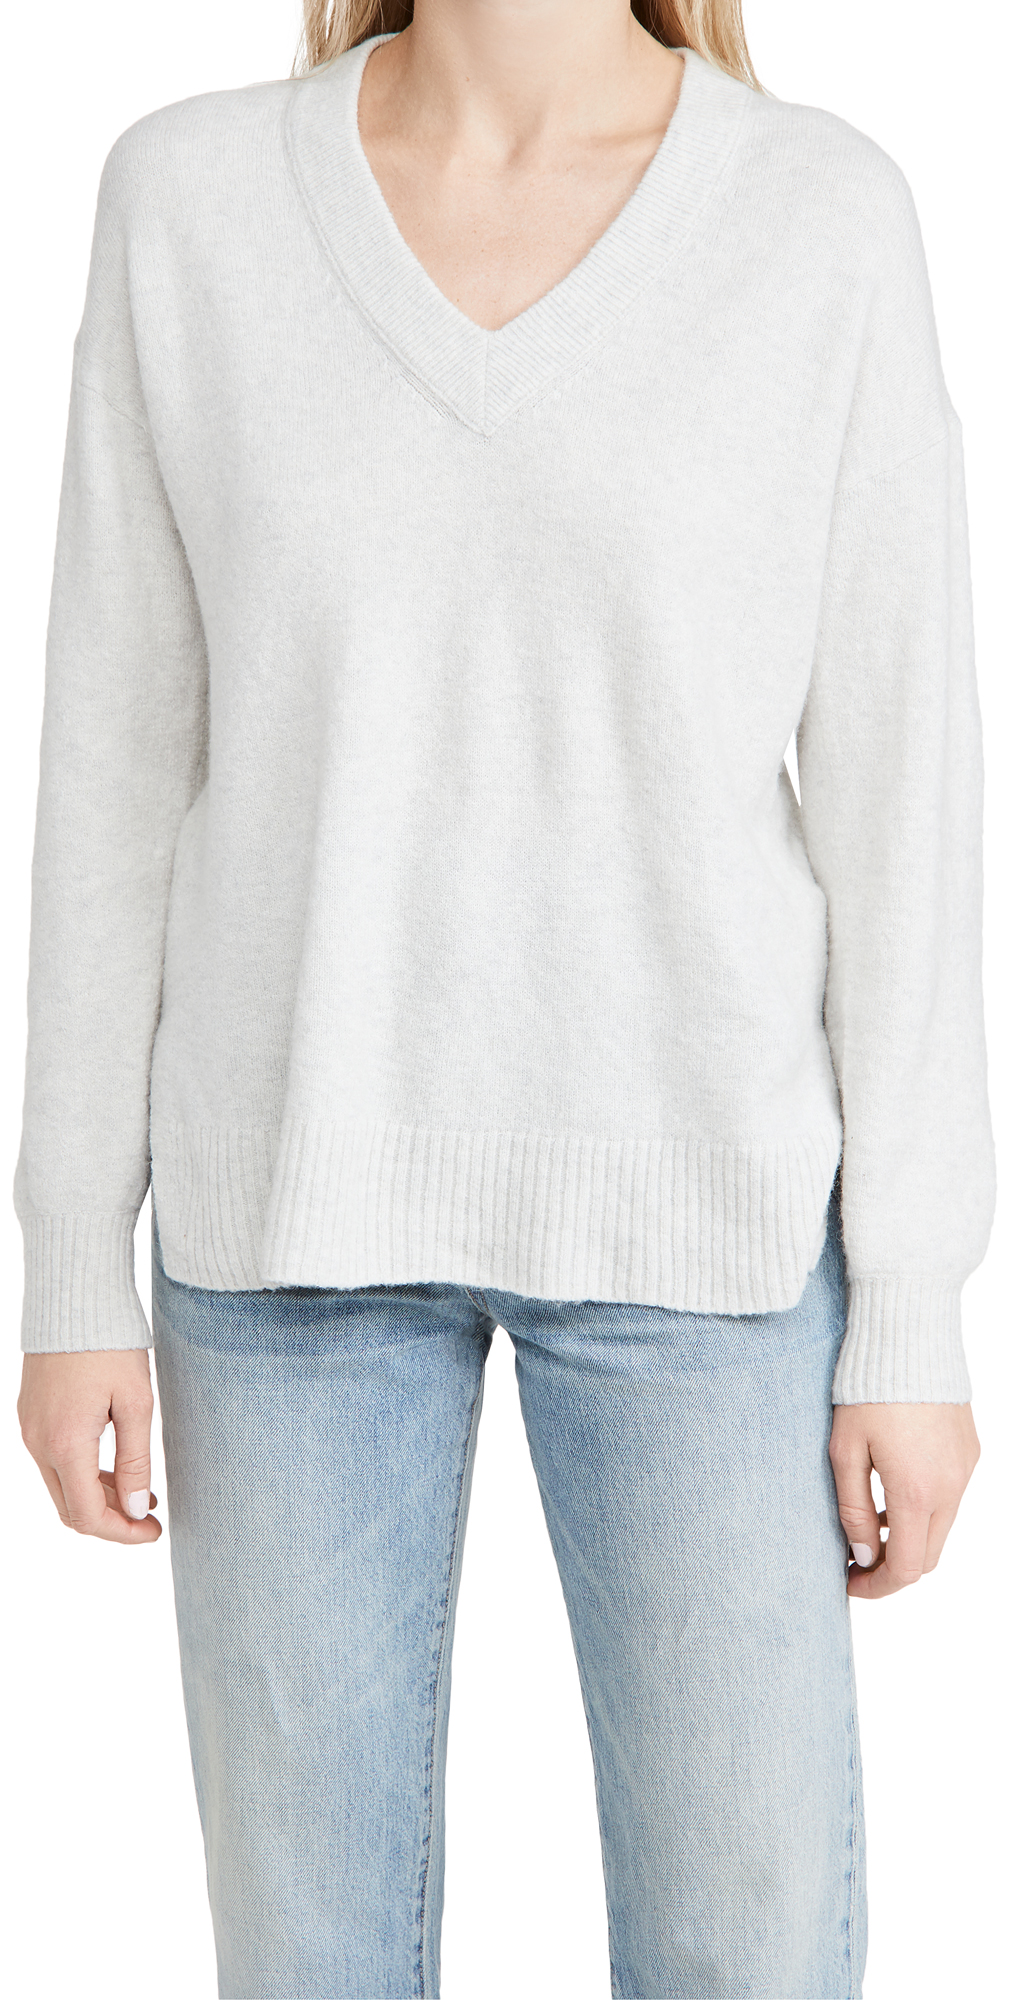 Madewell Bartlett V Neck Pullover Sweater